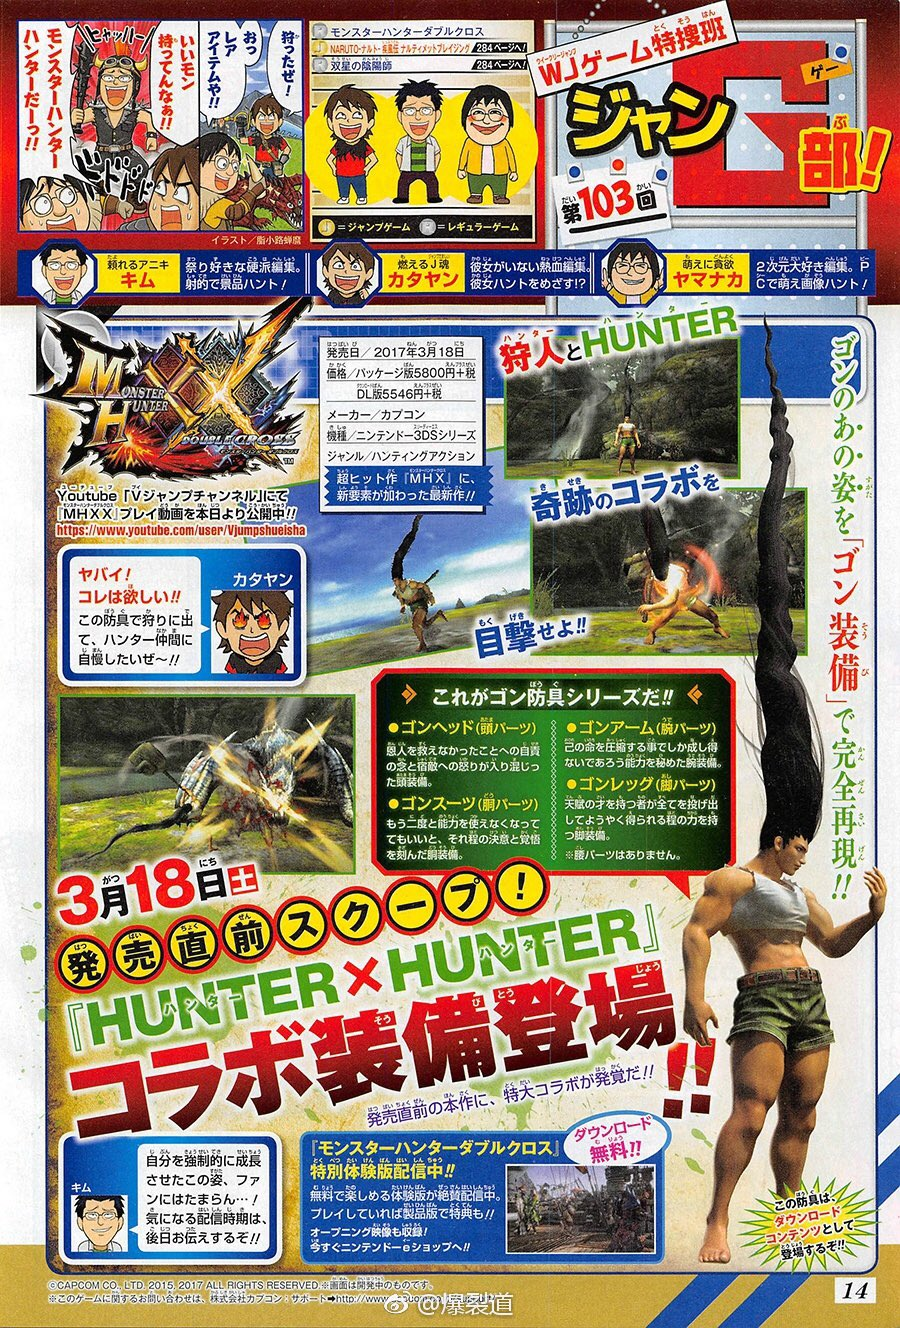 Monster hunter xx hunter x hunter